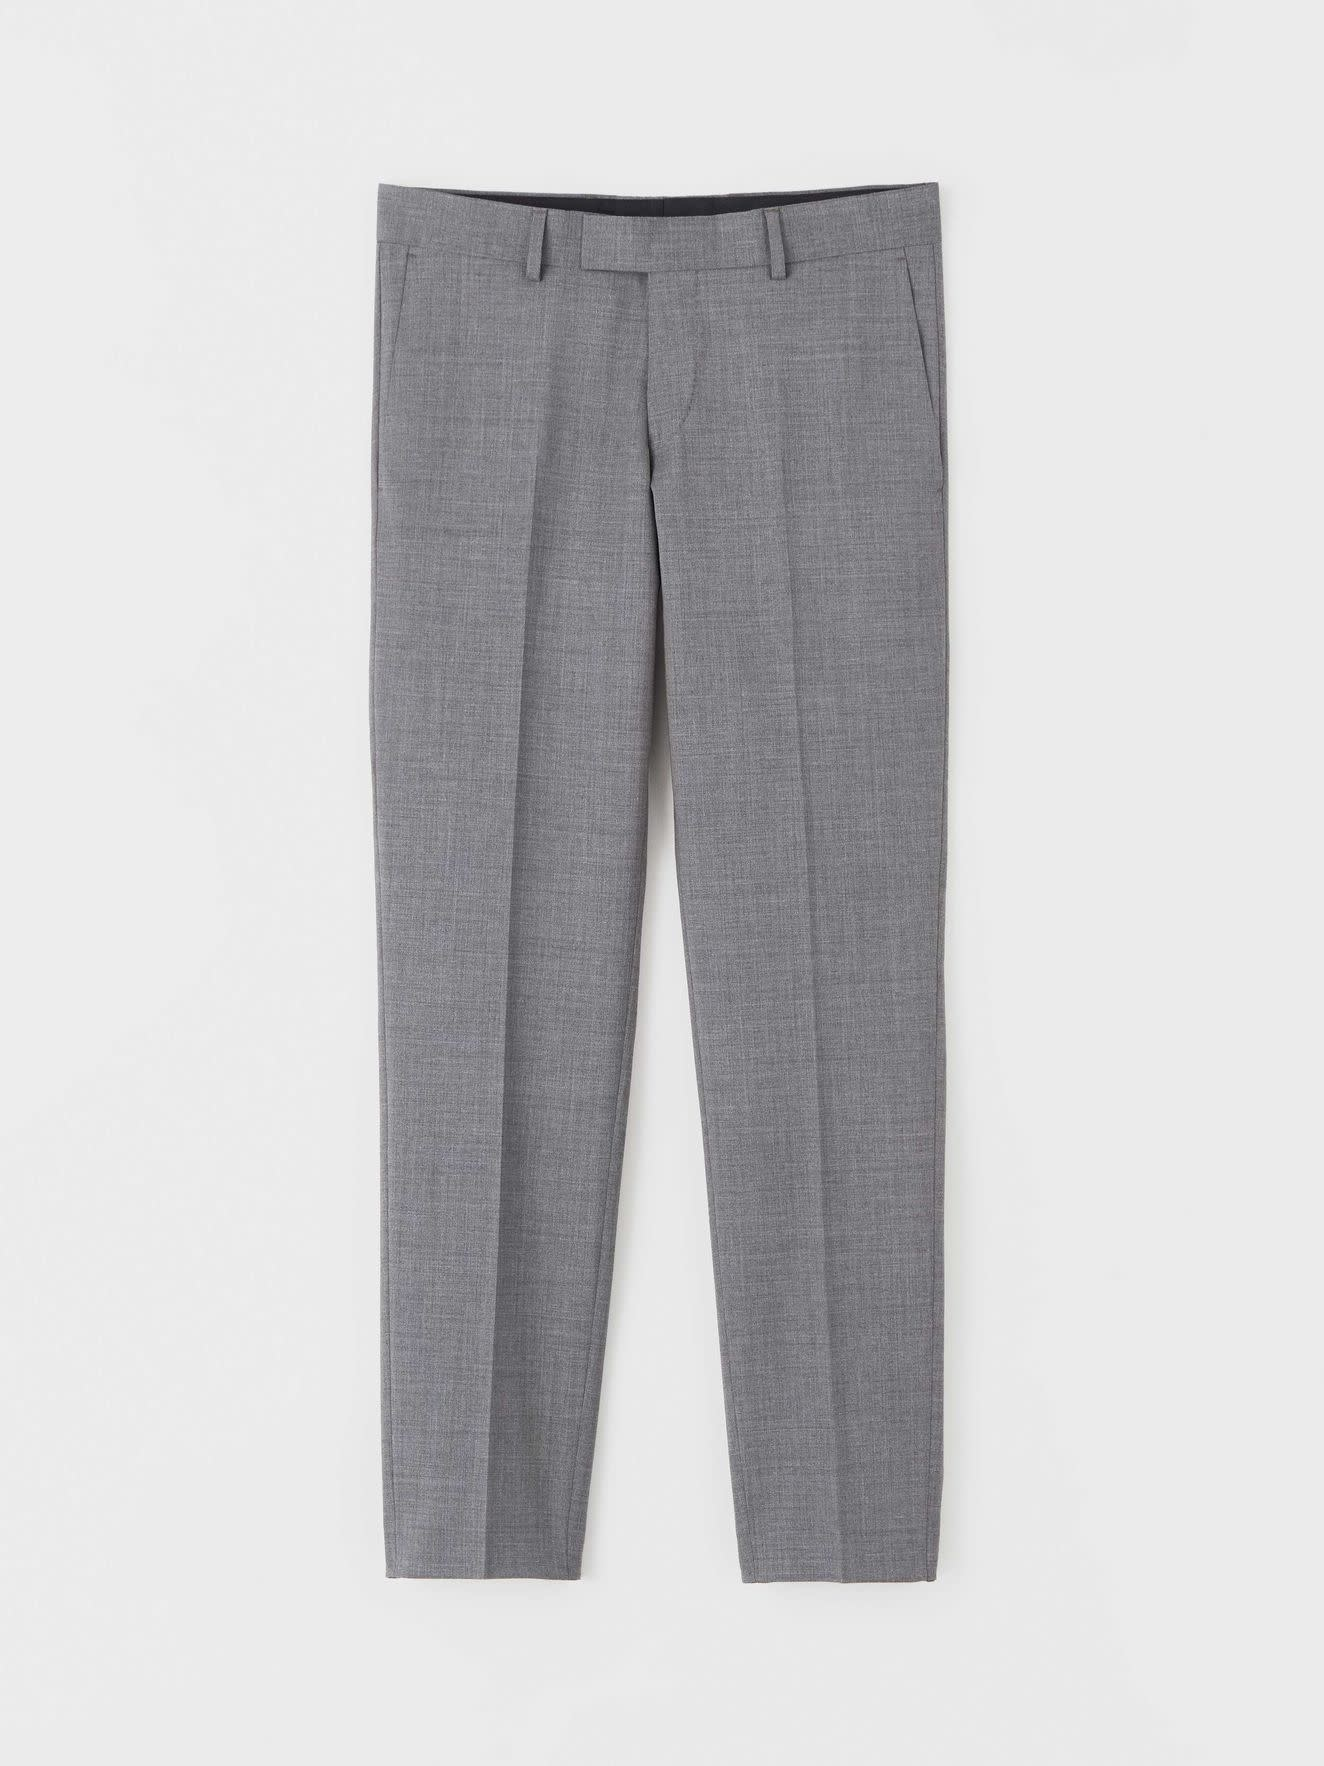 Tordon Suit Pants Light Grey-1